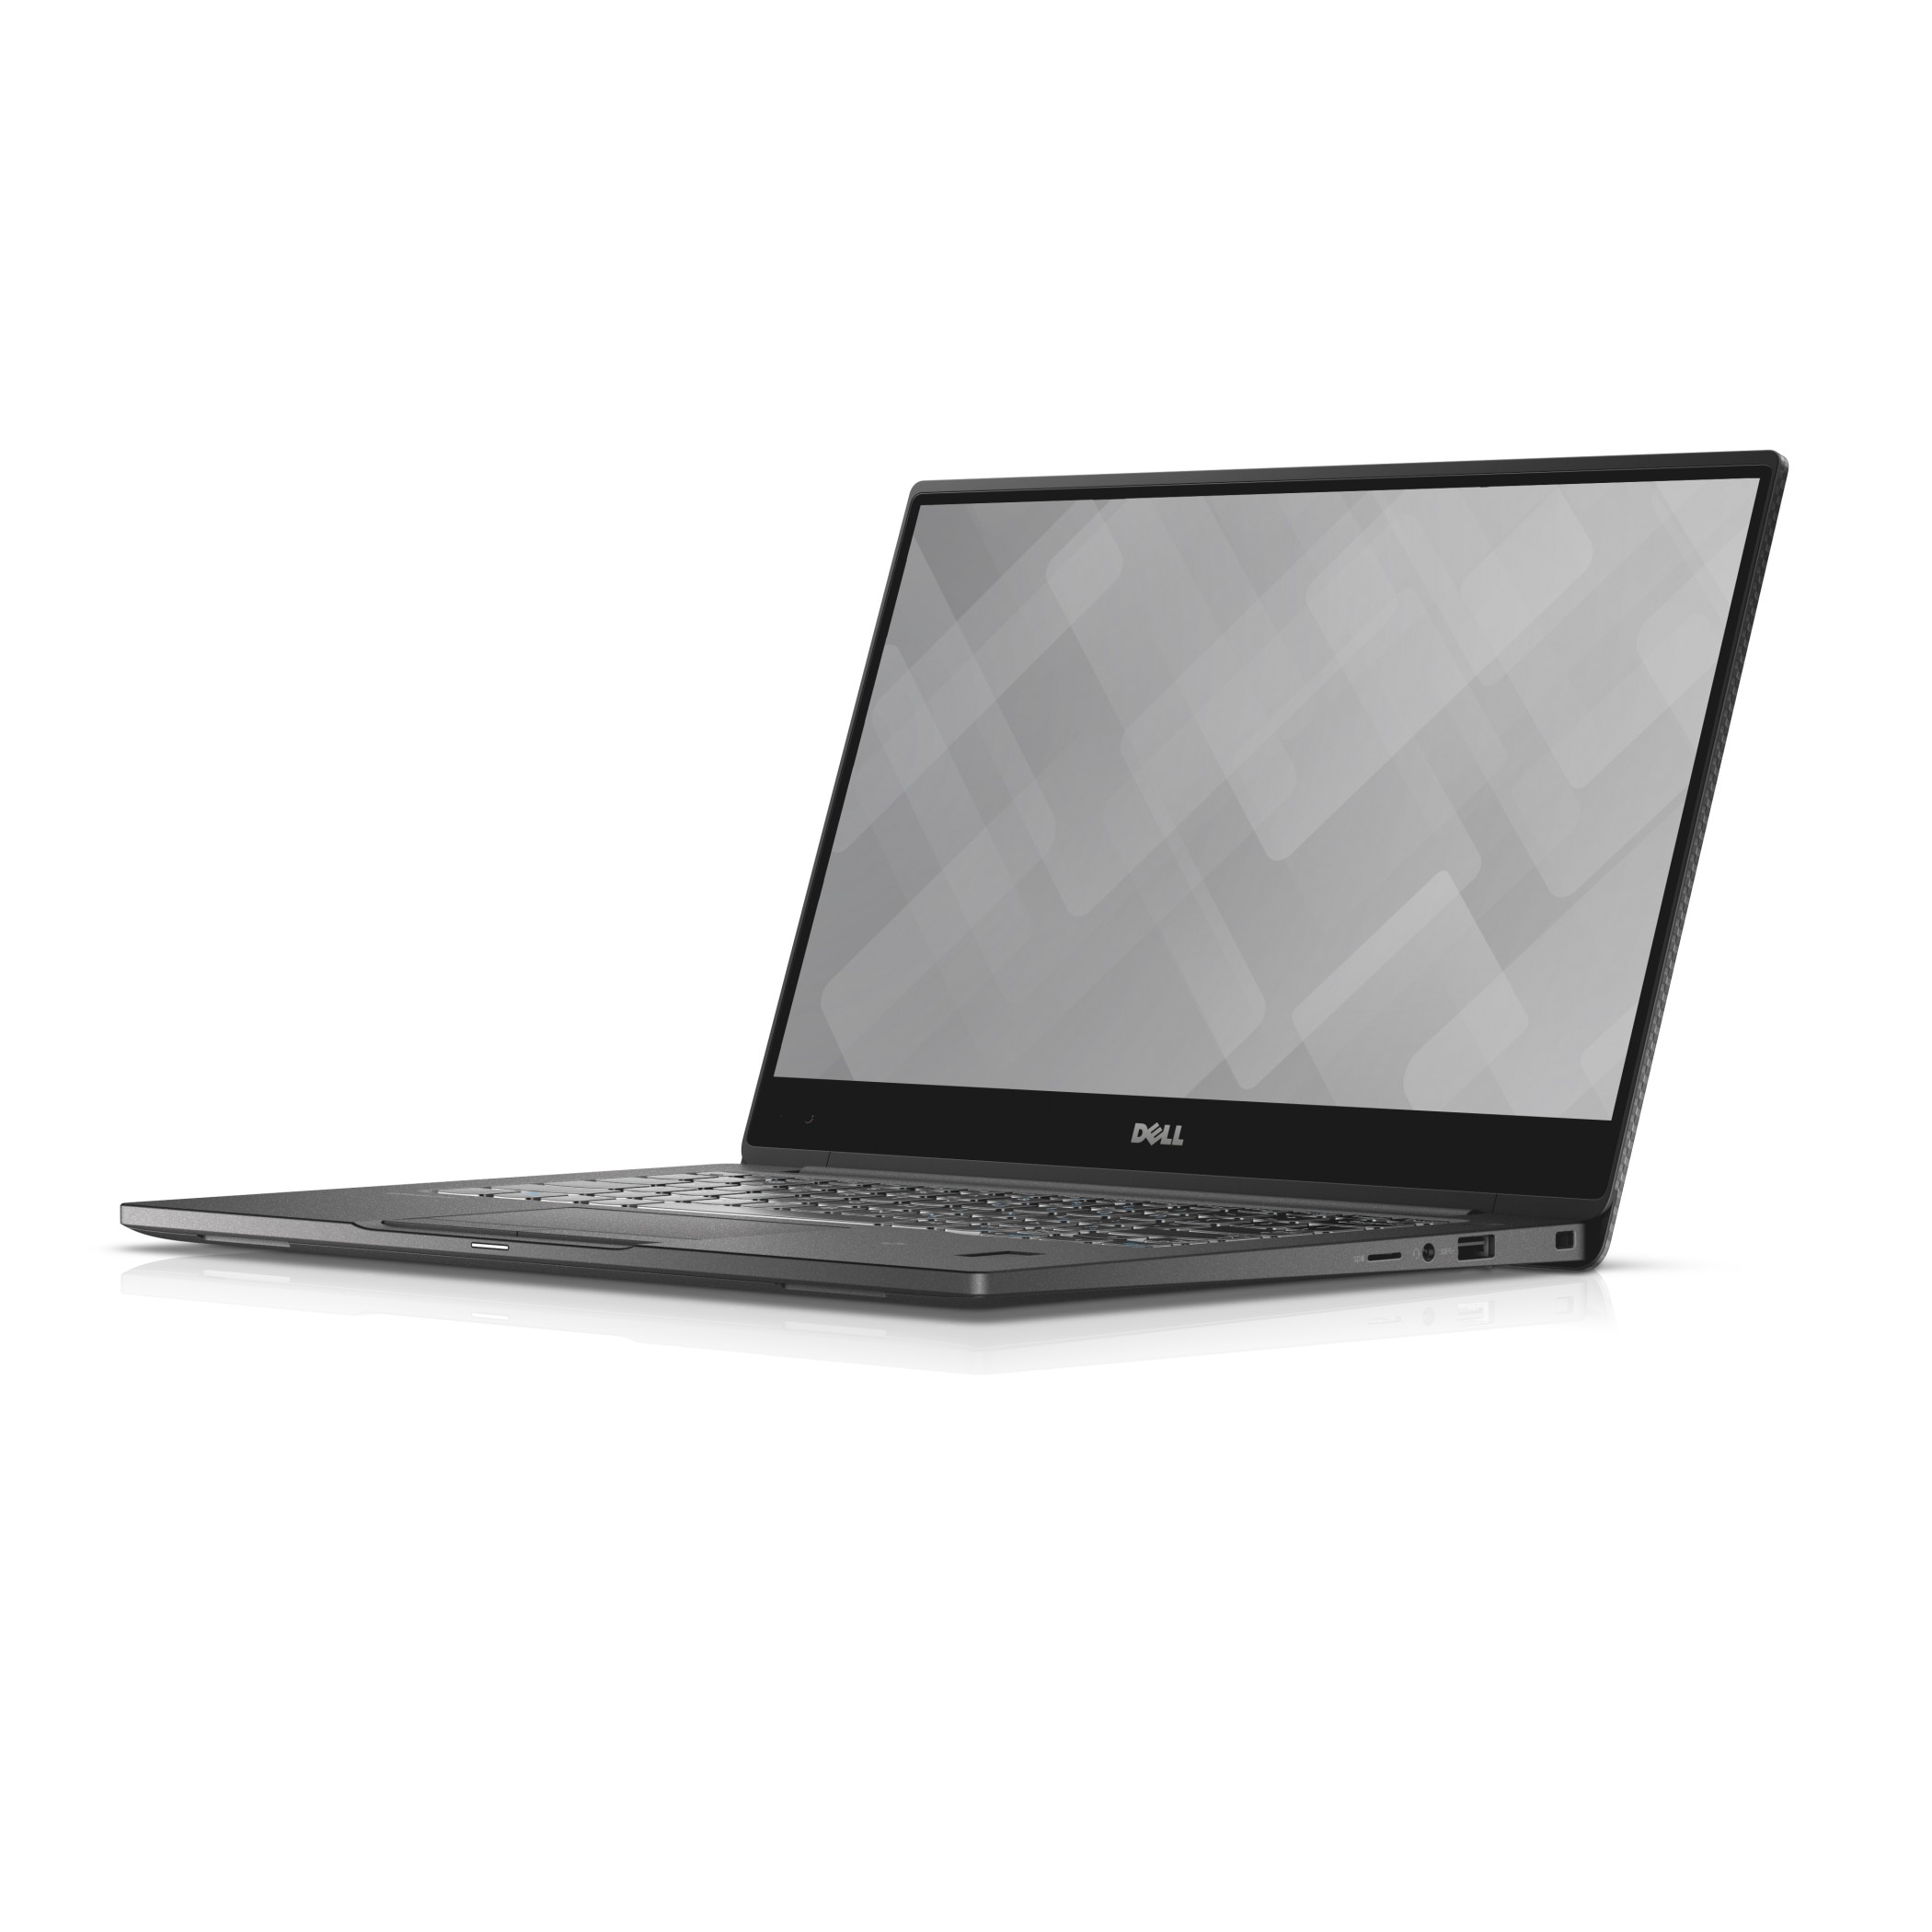 Product data-sheet DELL Latitude 13 1 2GHz m7-6Y75 Intel® Core™ M